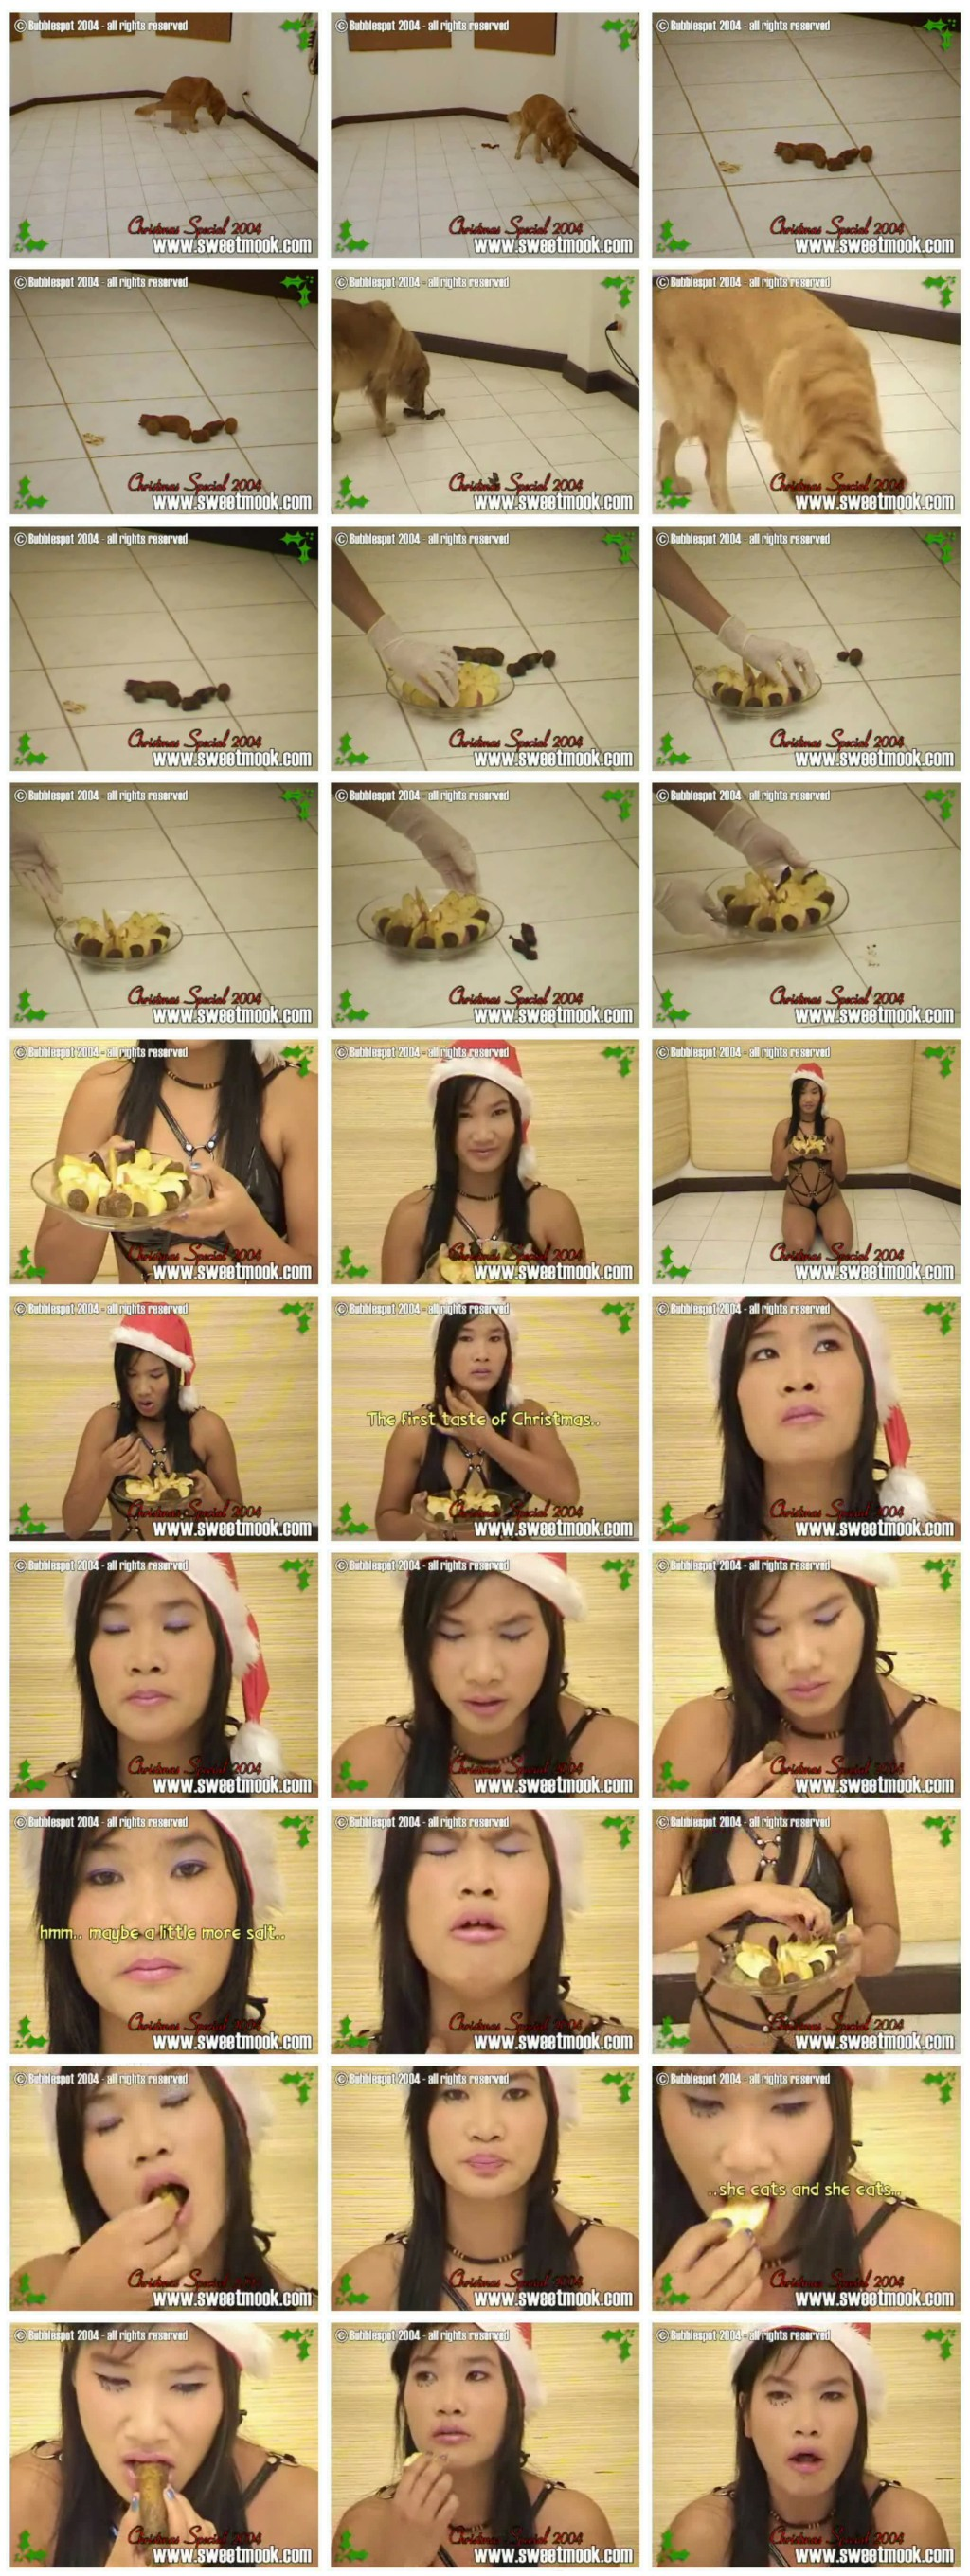 [Sweetmook.com] Asian girls are eating dog shit Merry Christmas - 01 [Scat, Piss, Zoo]